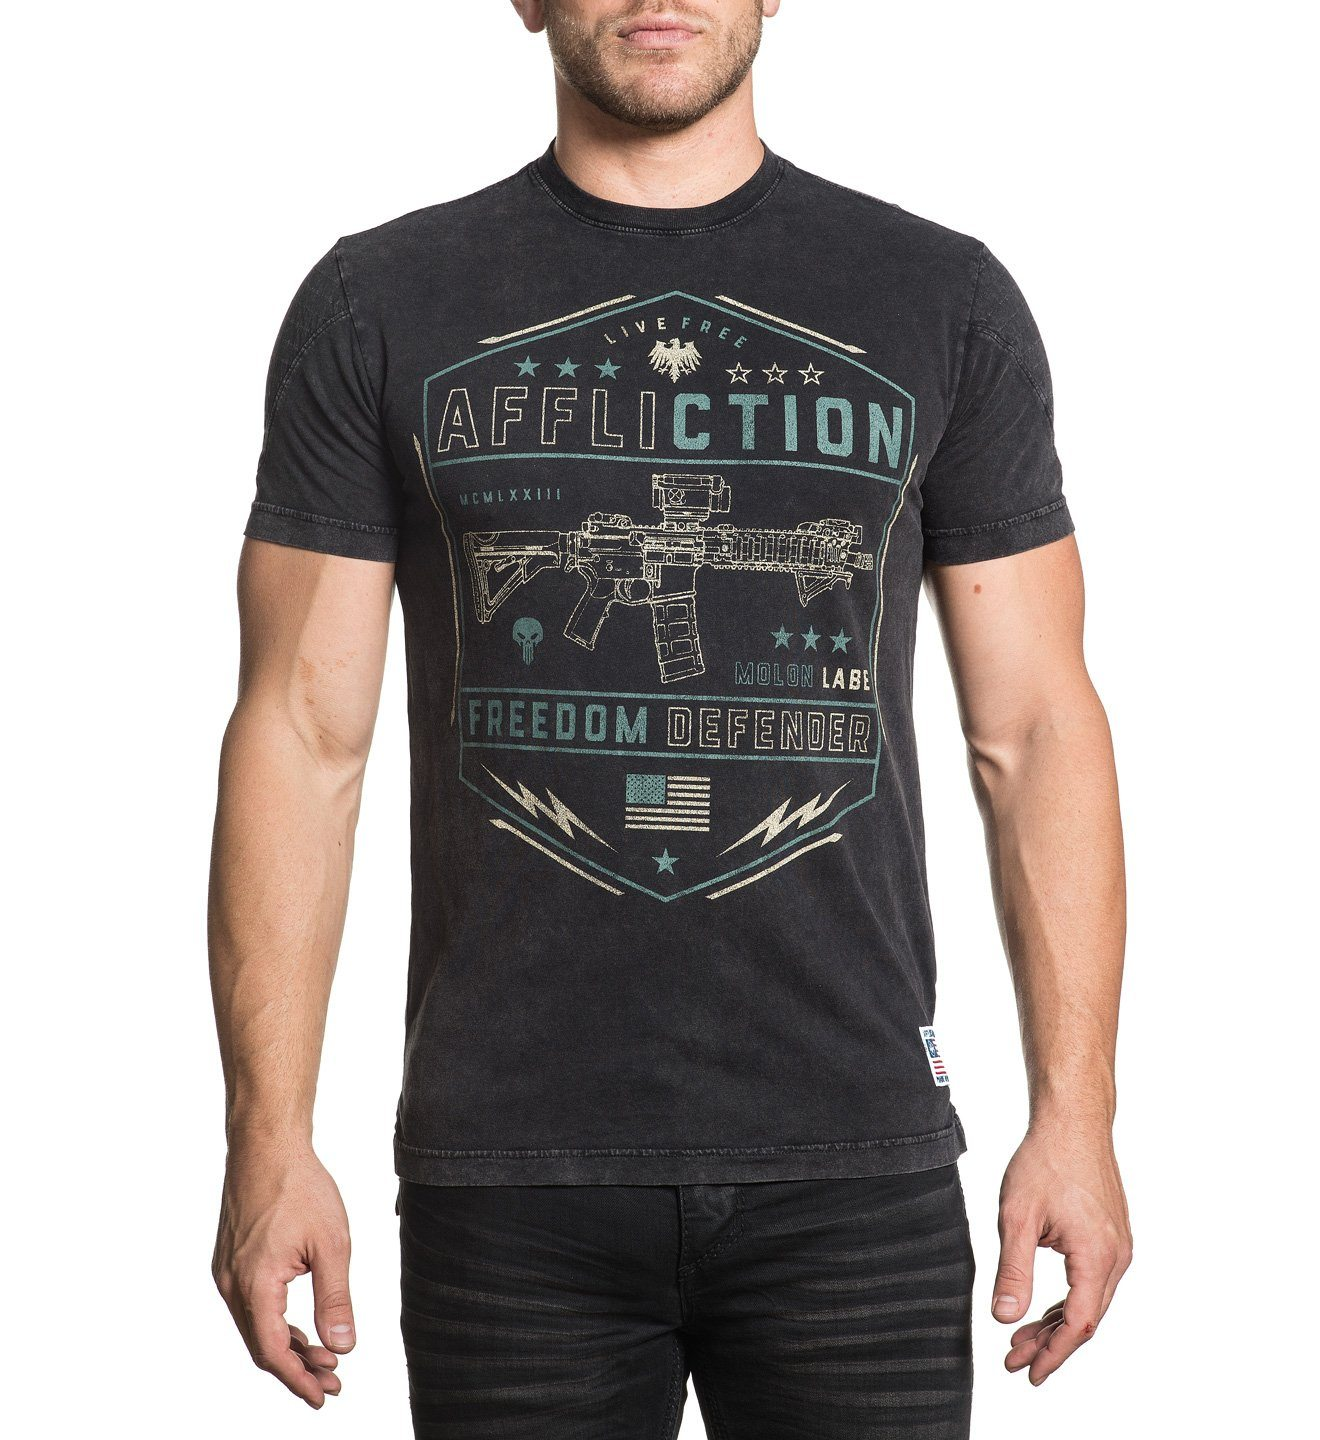 Recoil - Mens Short Sleeve Tees - Affliction Clothing